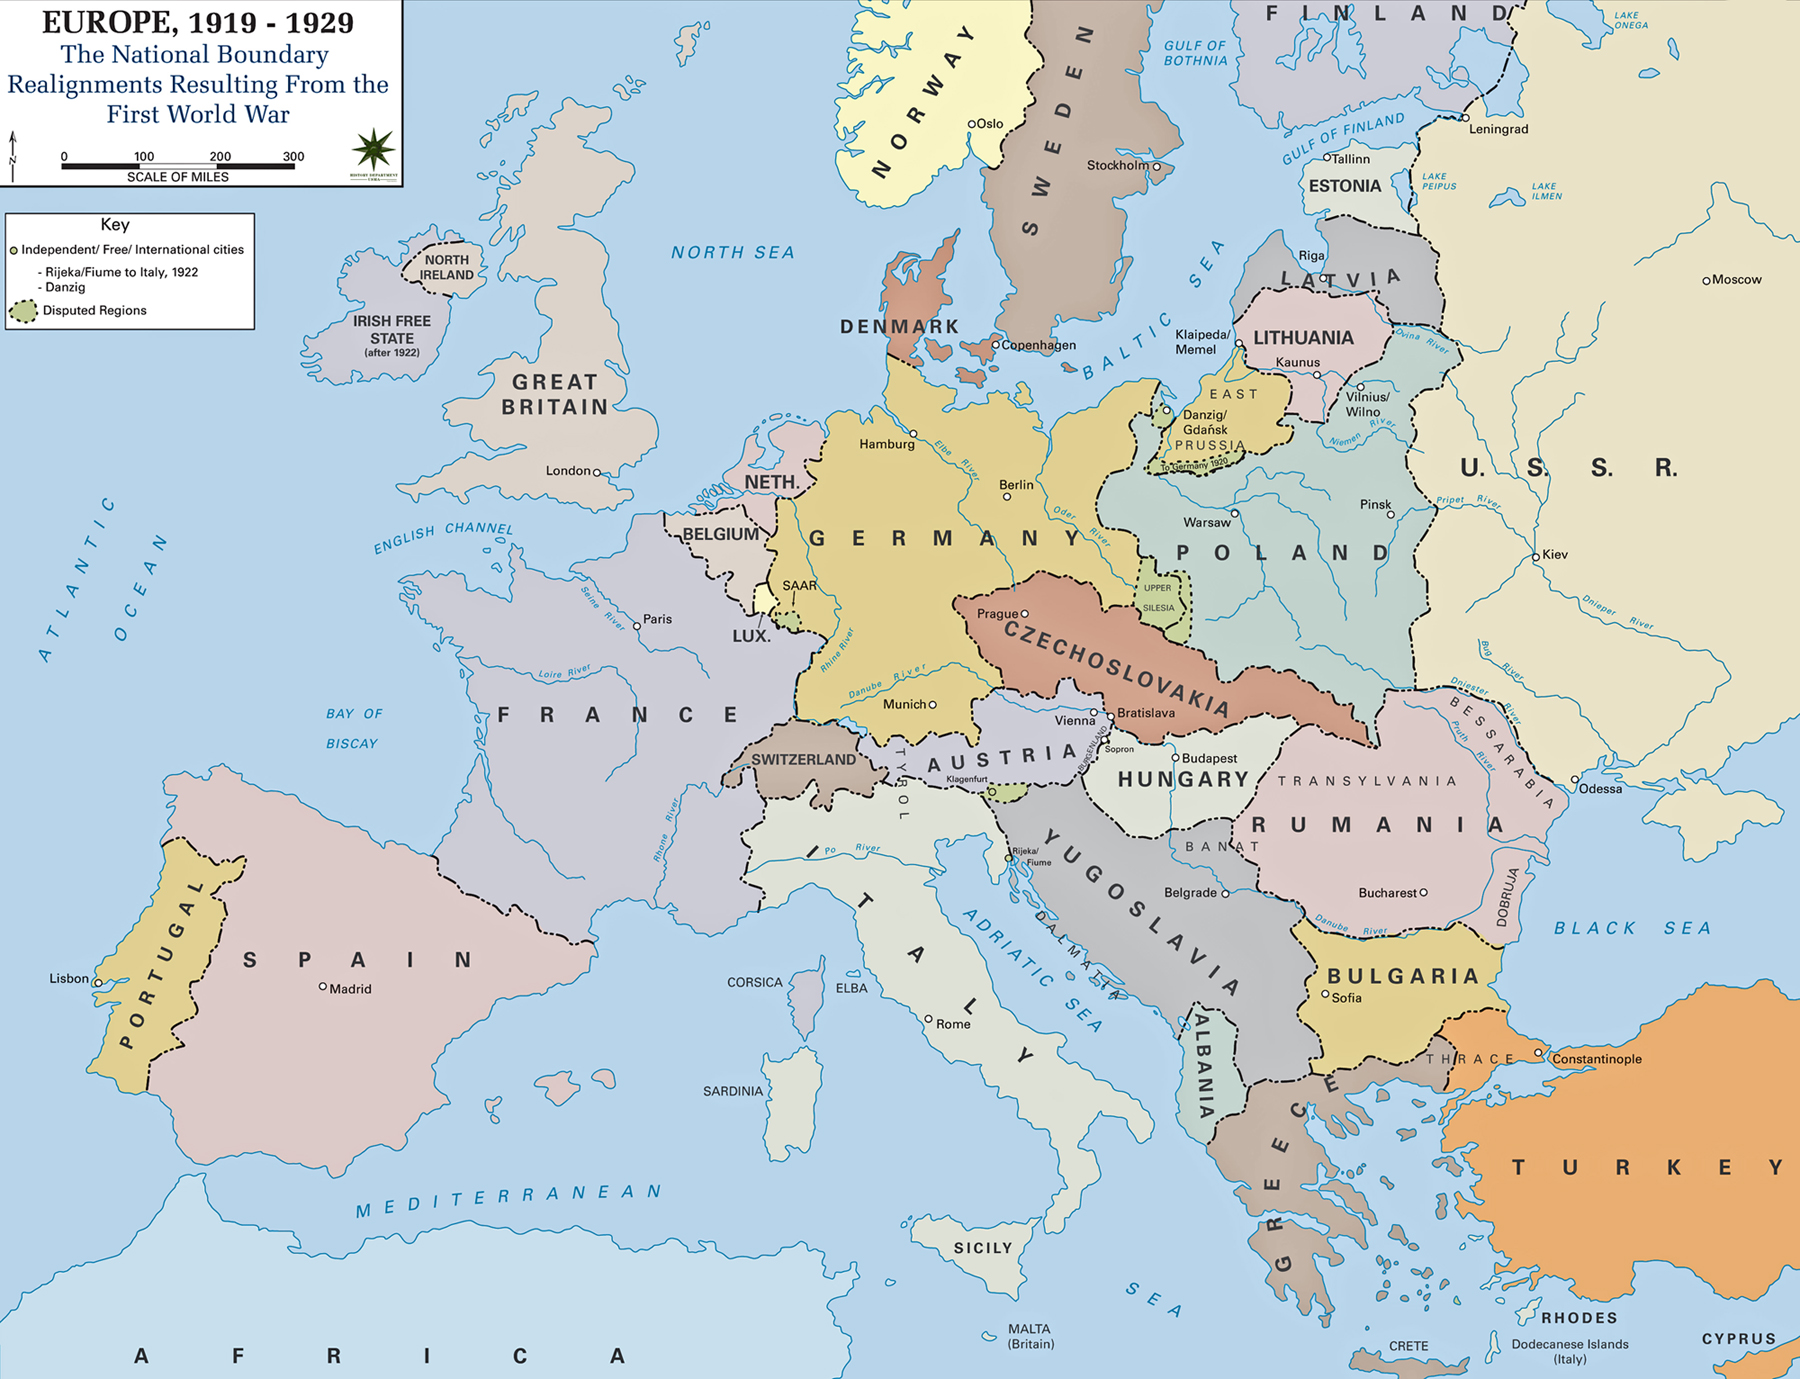 Map of Europe in 1919